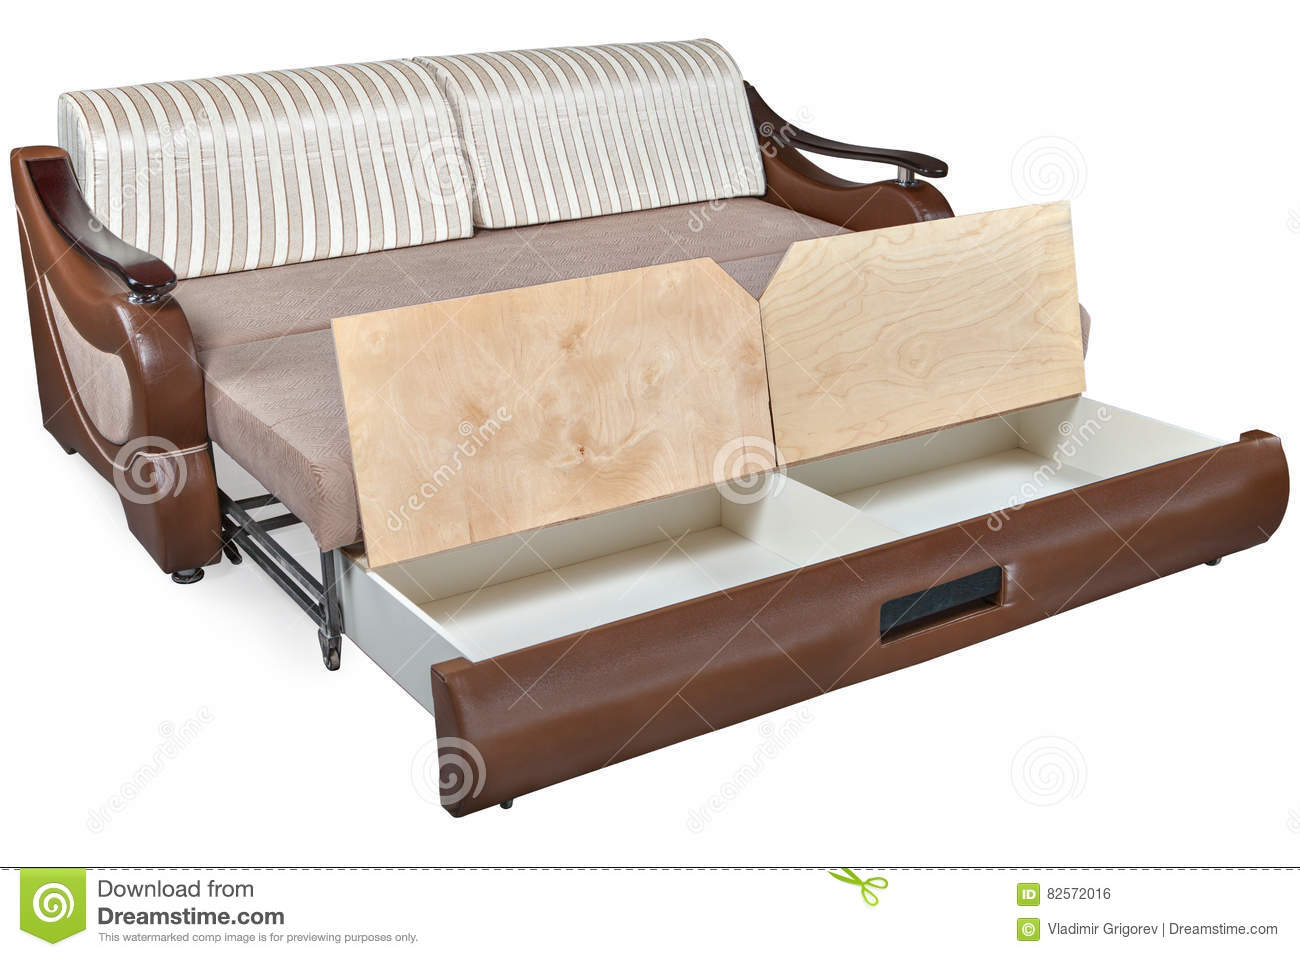 transforming sofa bed u shaped uk john lewis transformer combination furniture stock photo